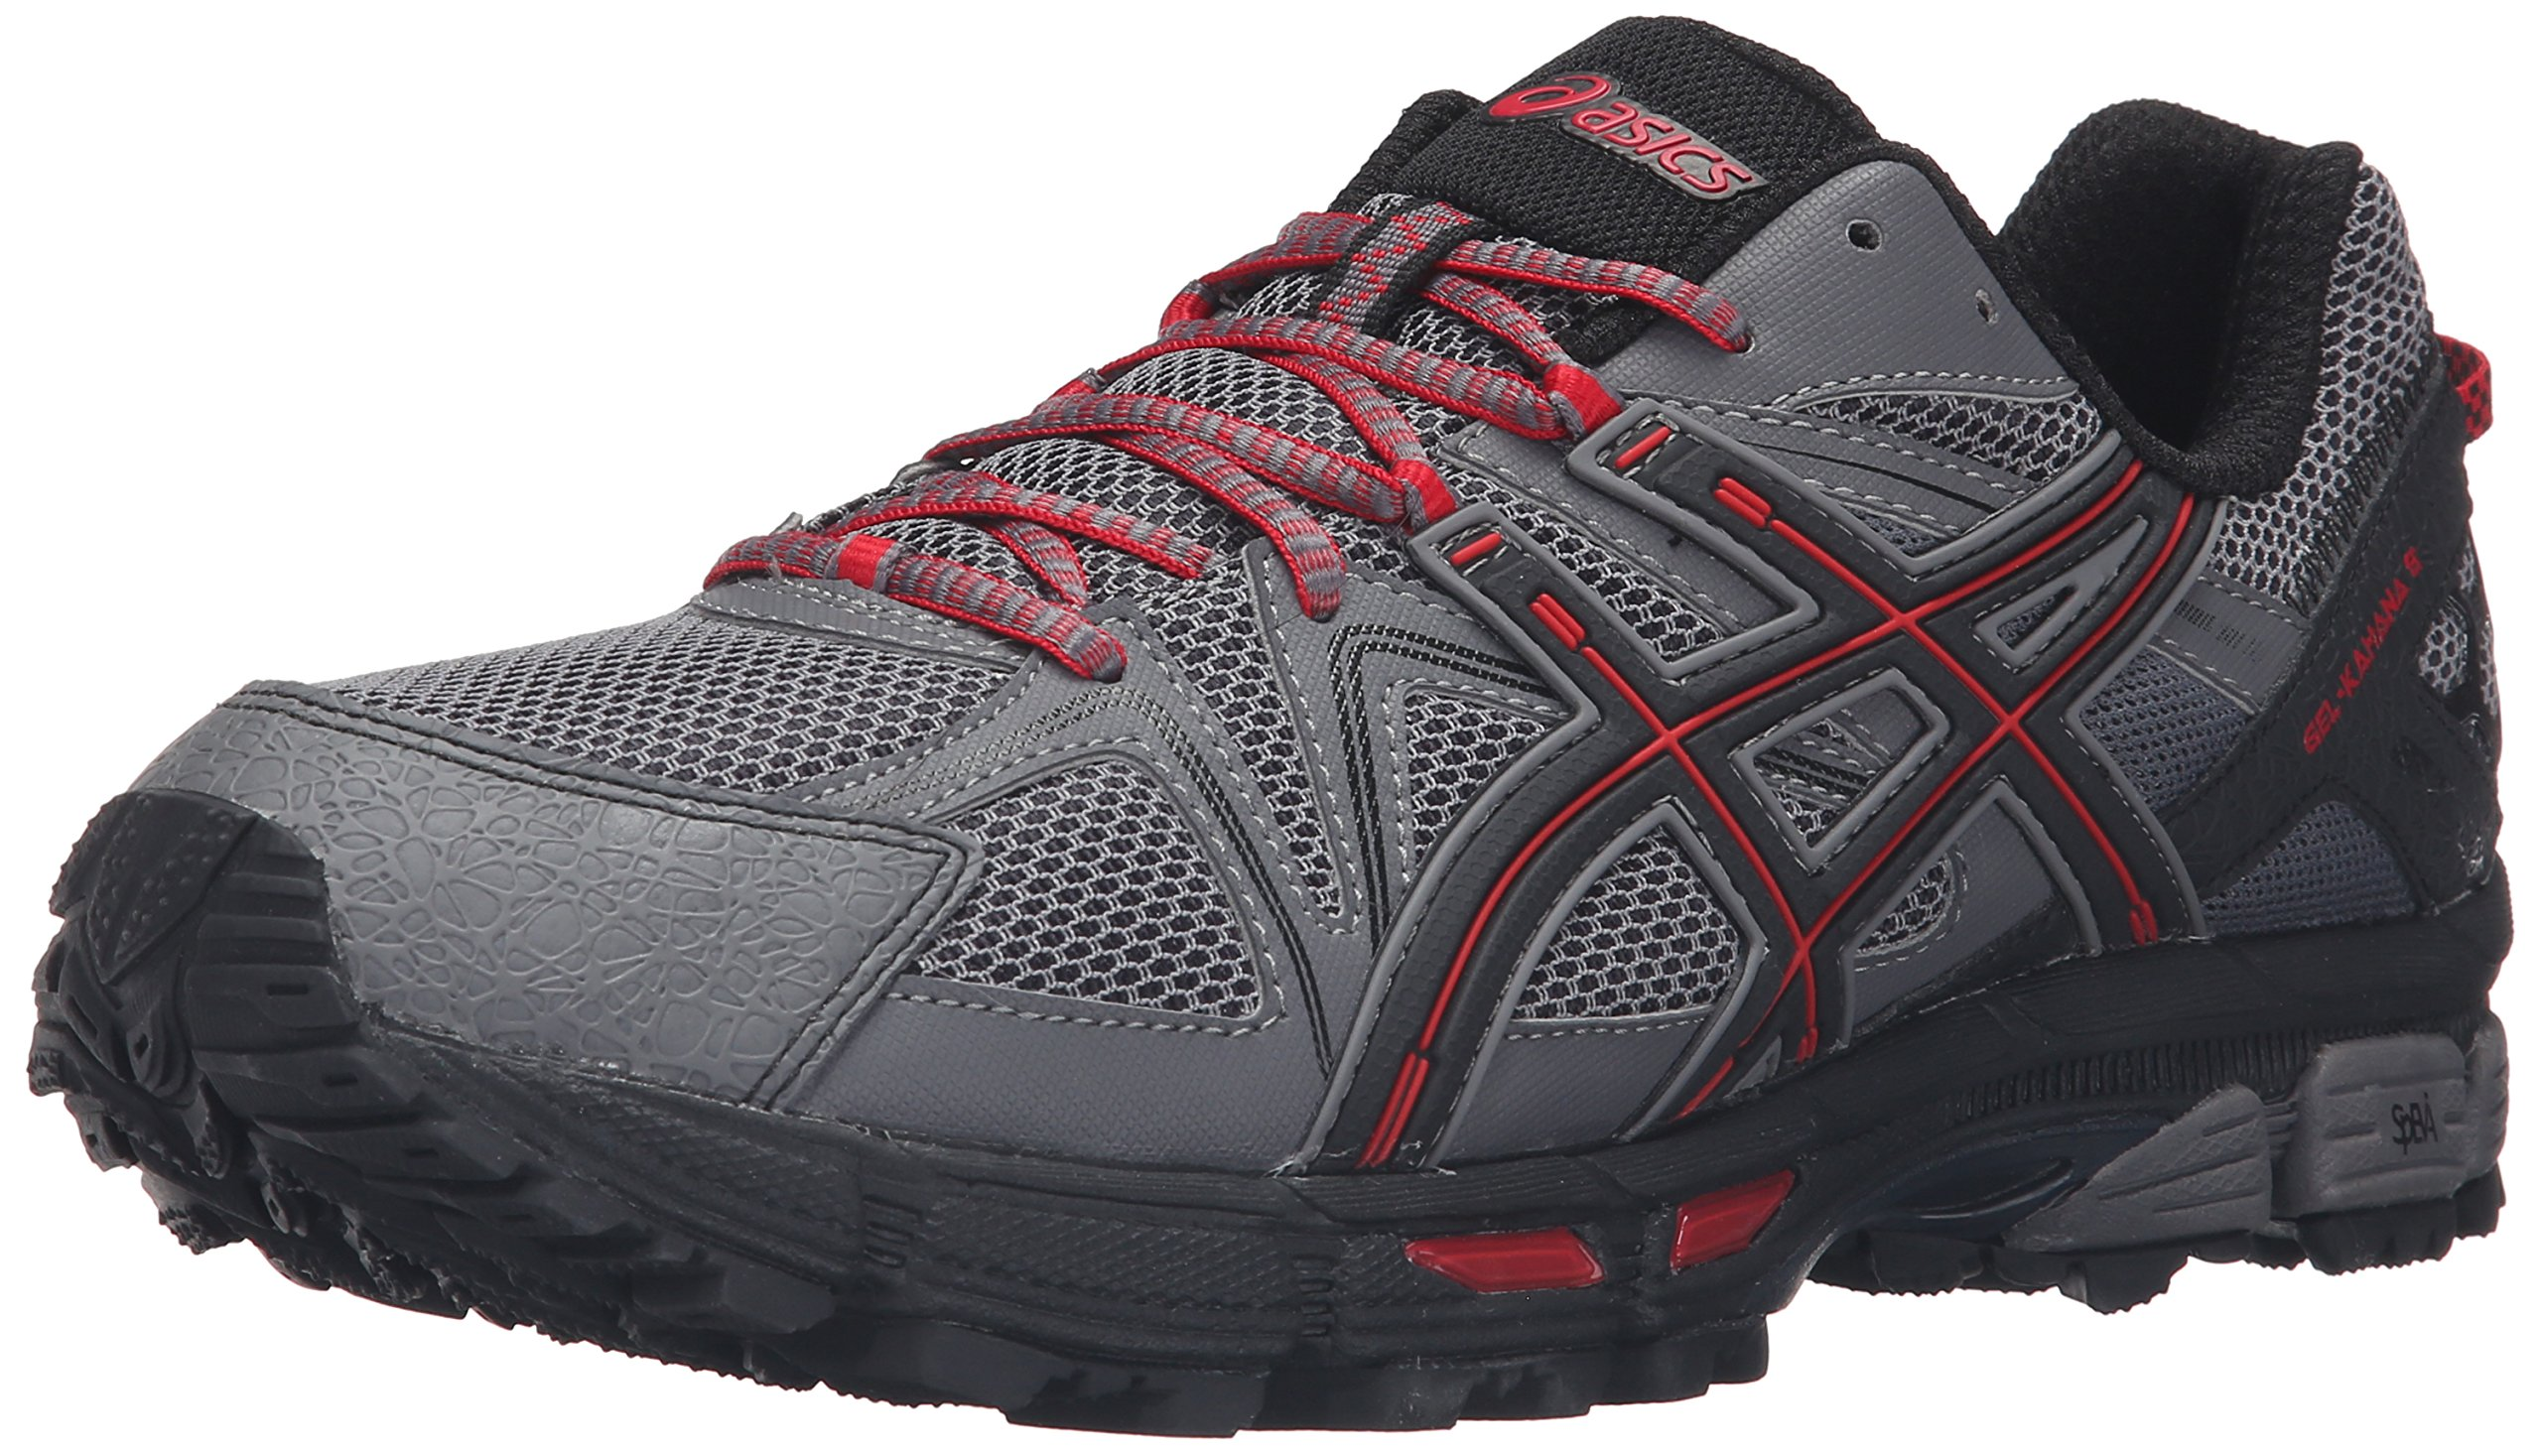 ASICS Men's Gel-Kahana 8 Trail Runner, Shark/Black/True Red, 7.5 M US